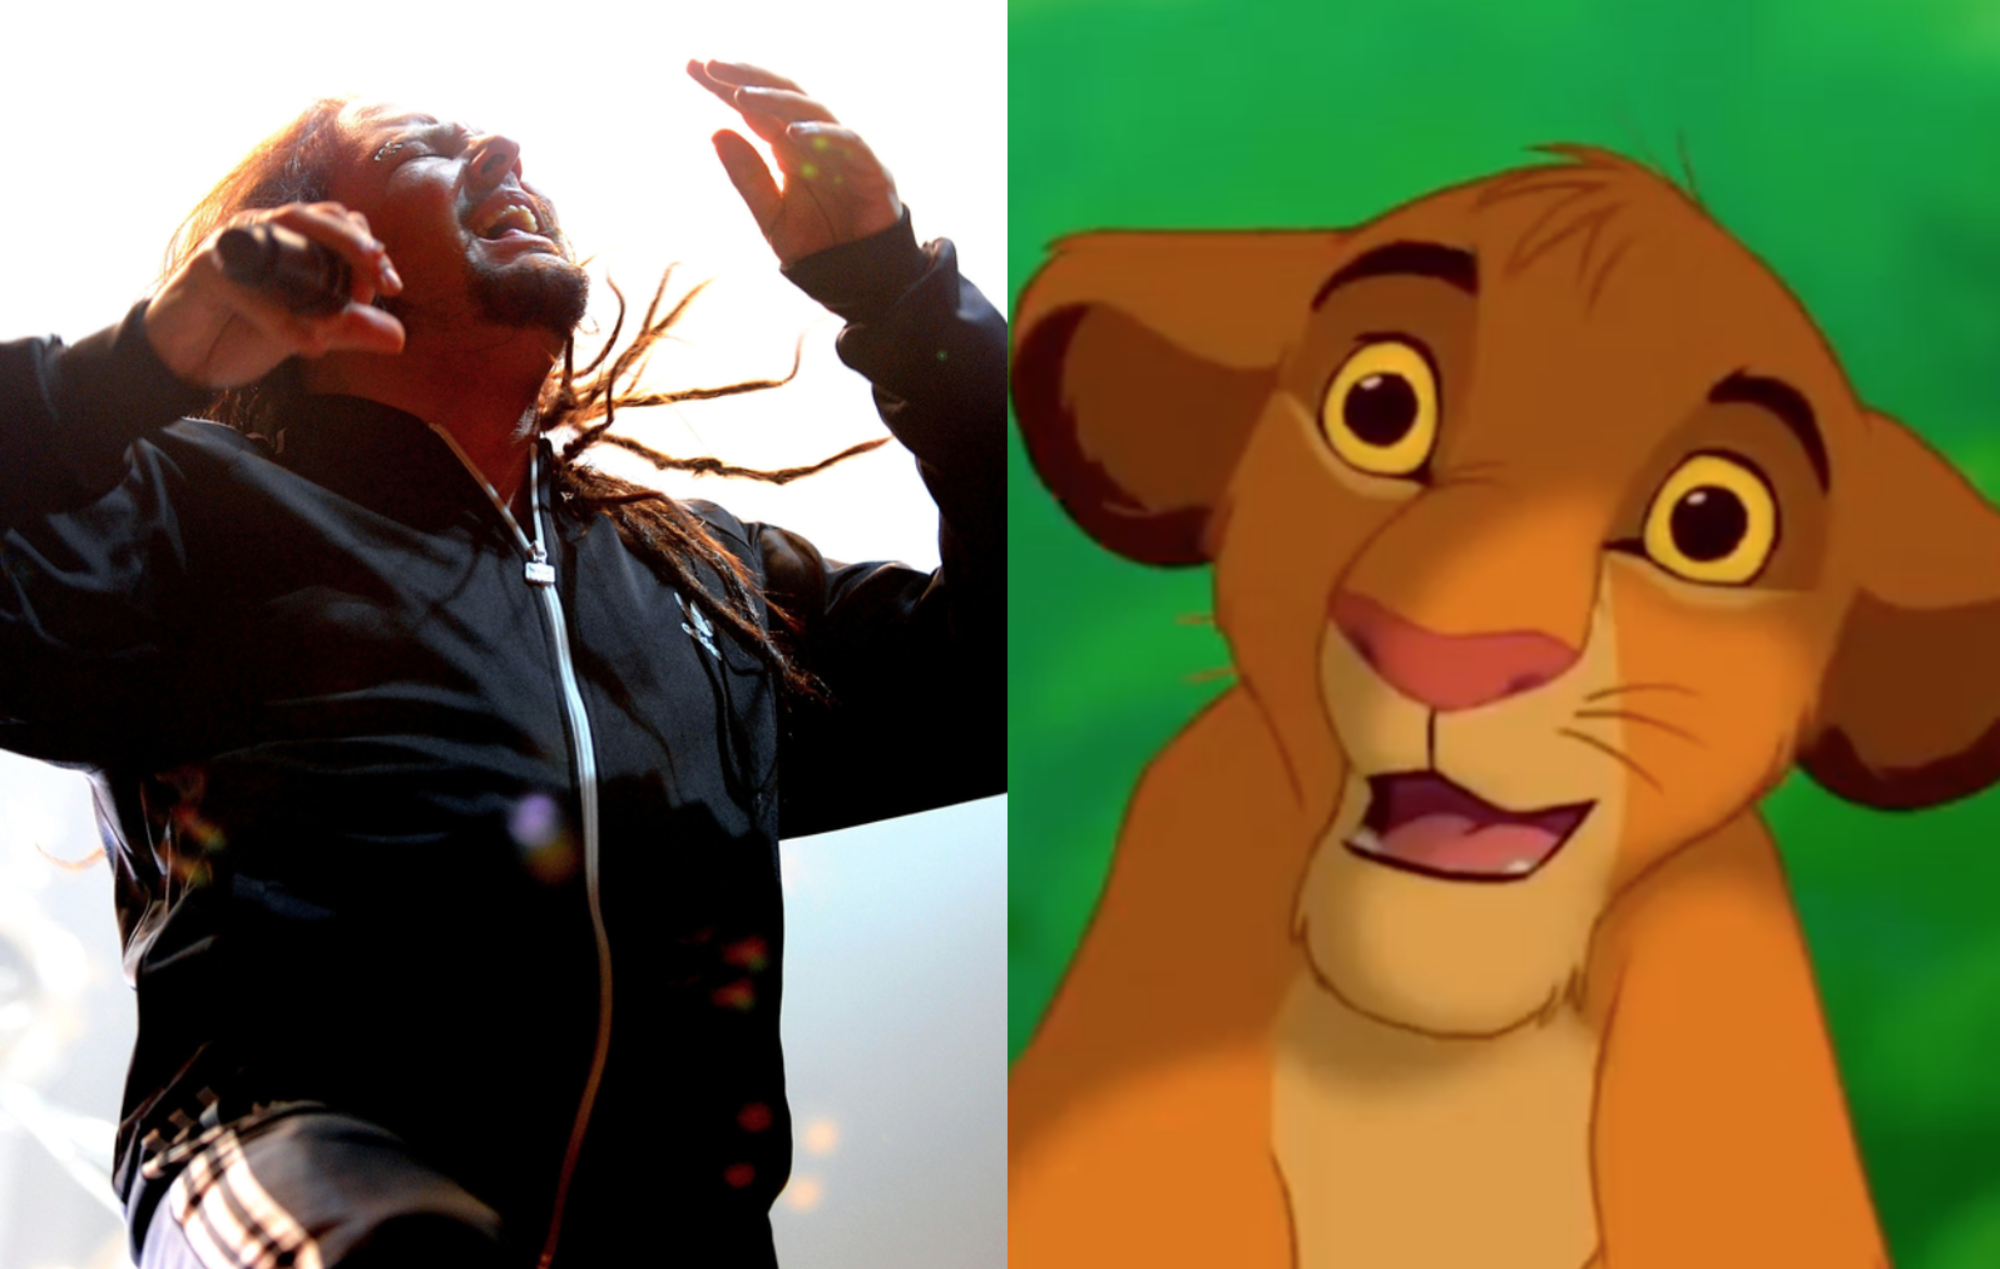 Lion Korn: Someone has mashed up Korn's 'Freak on a Leash' with the Lion King's 'Circle of Life'